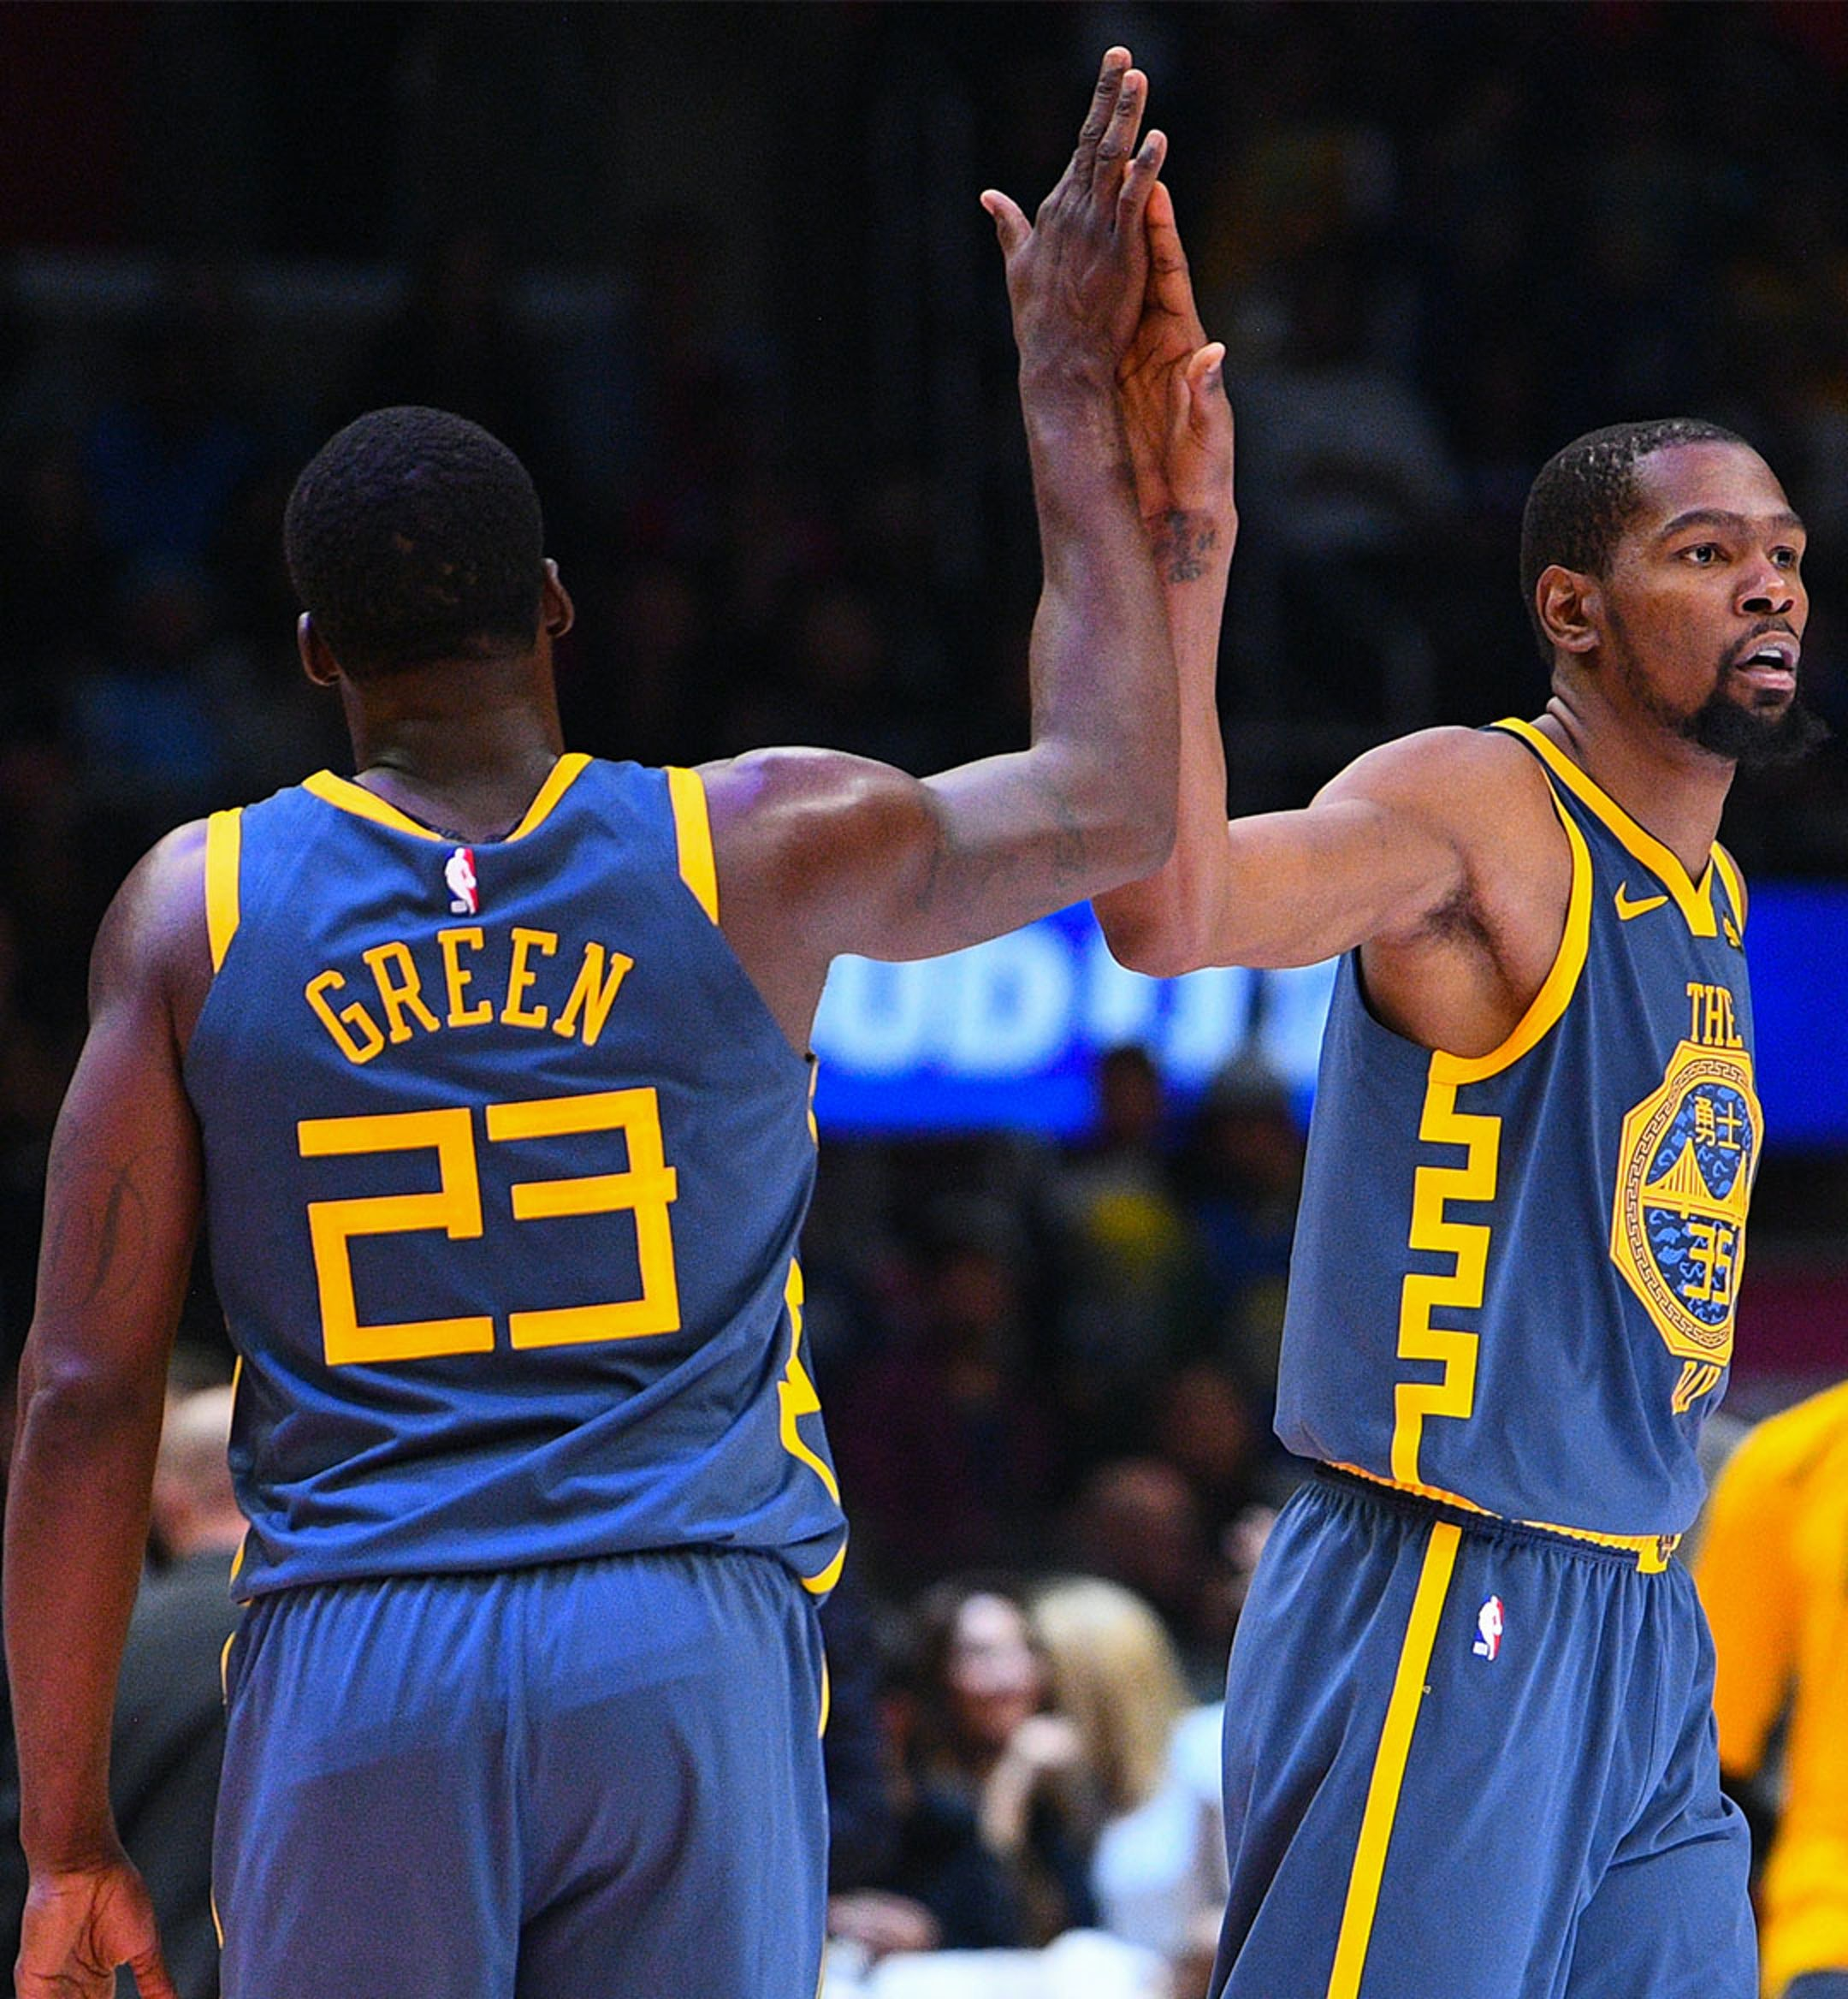 draymond green kevin durant mobile image